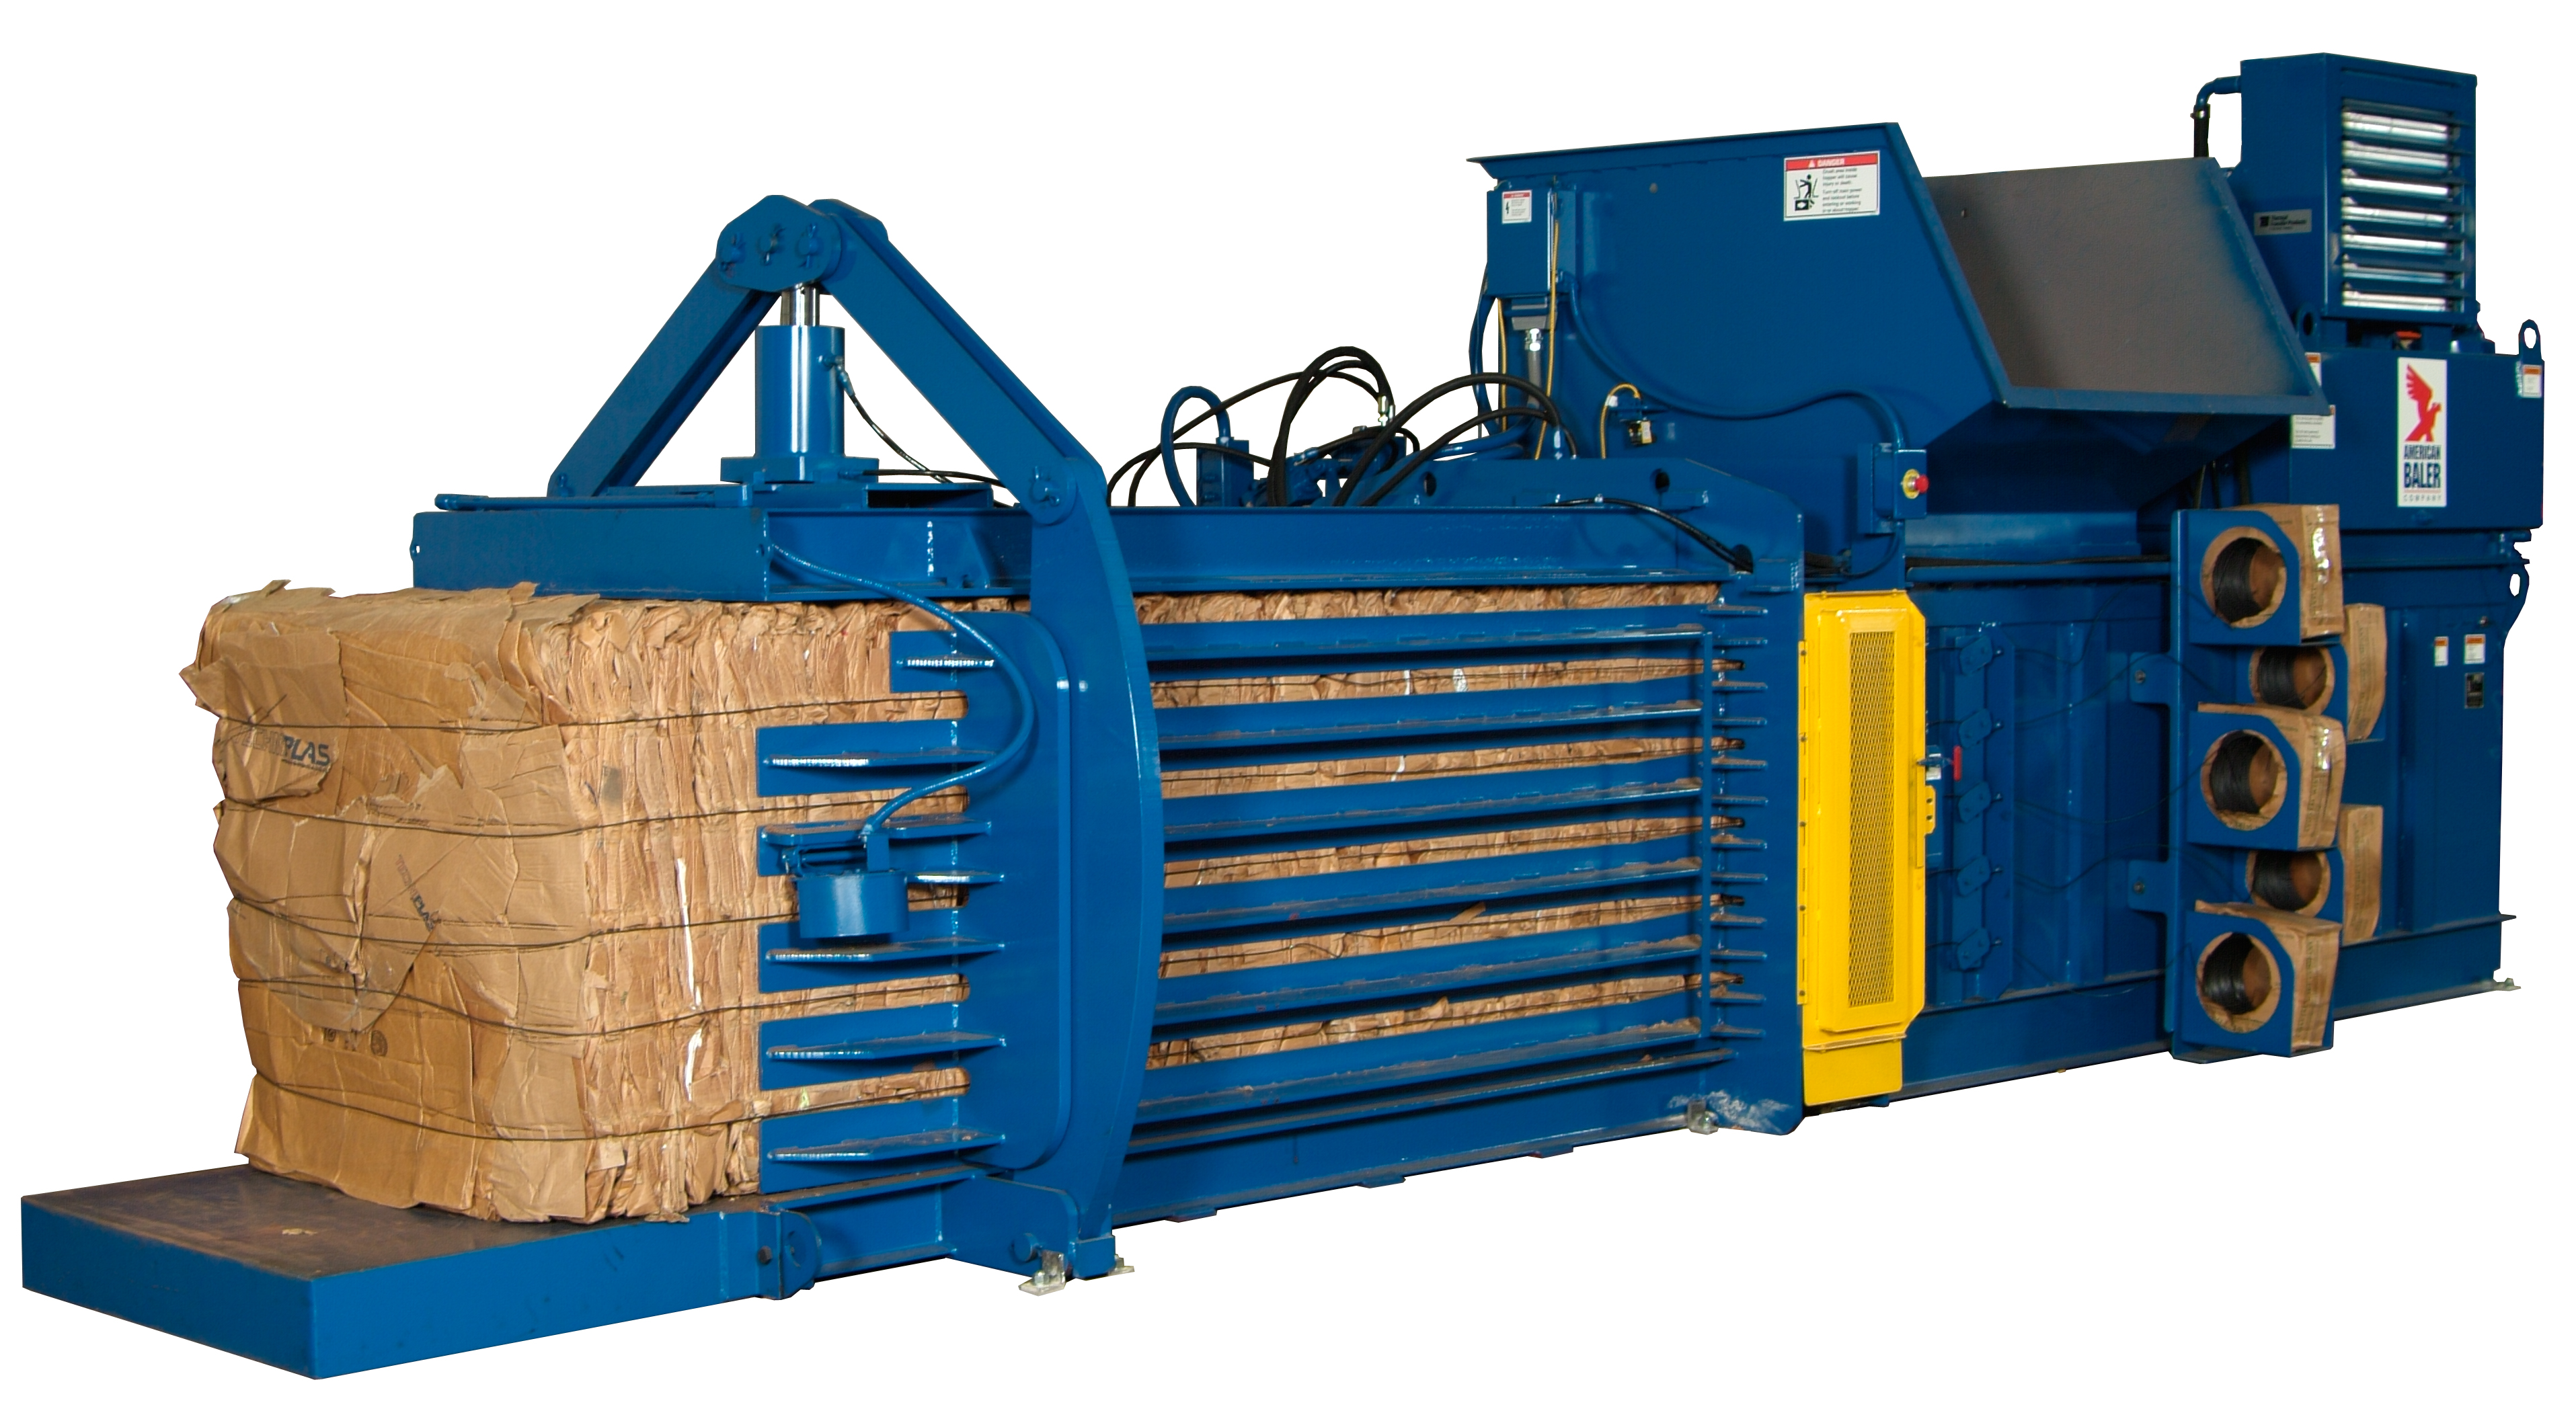 DC (Distribution Center) Baler